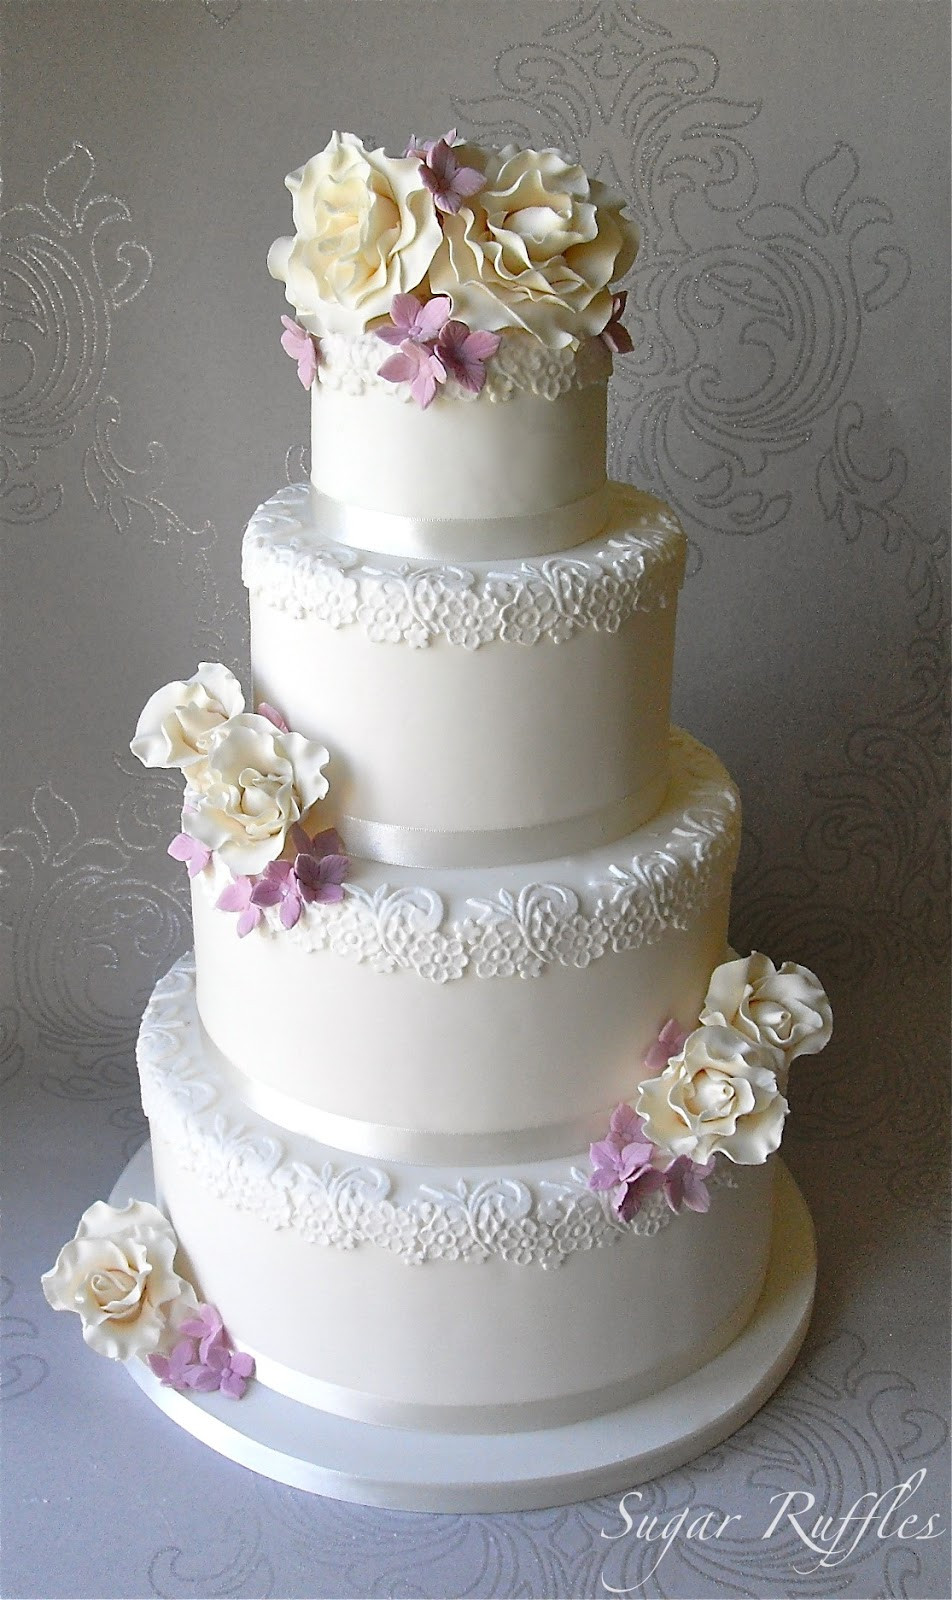 Elegant Wedding Cakes  Sugar Ruffles Elegant Wedding Cakes Barrow in Furness